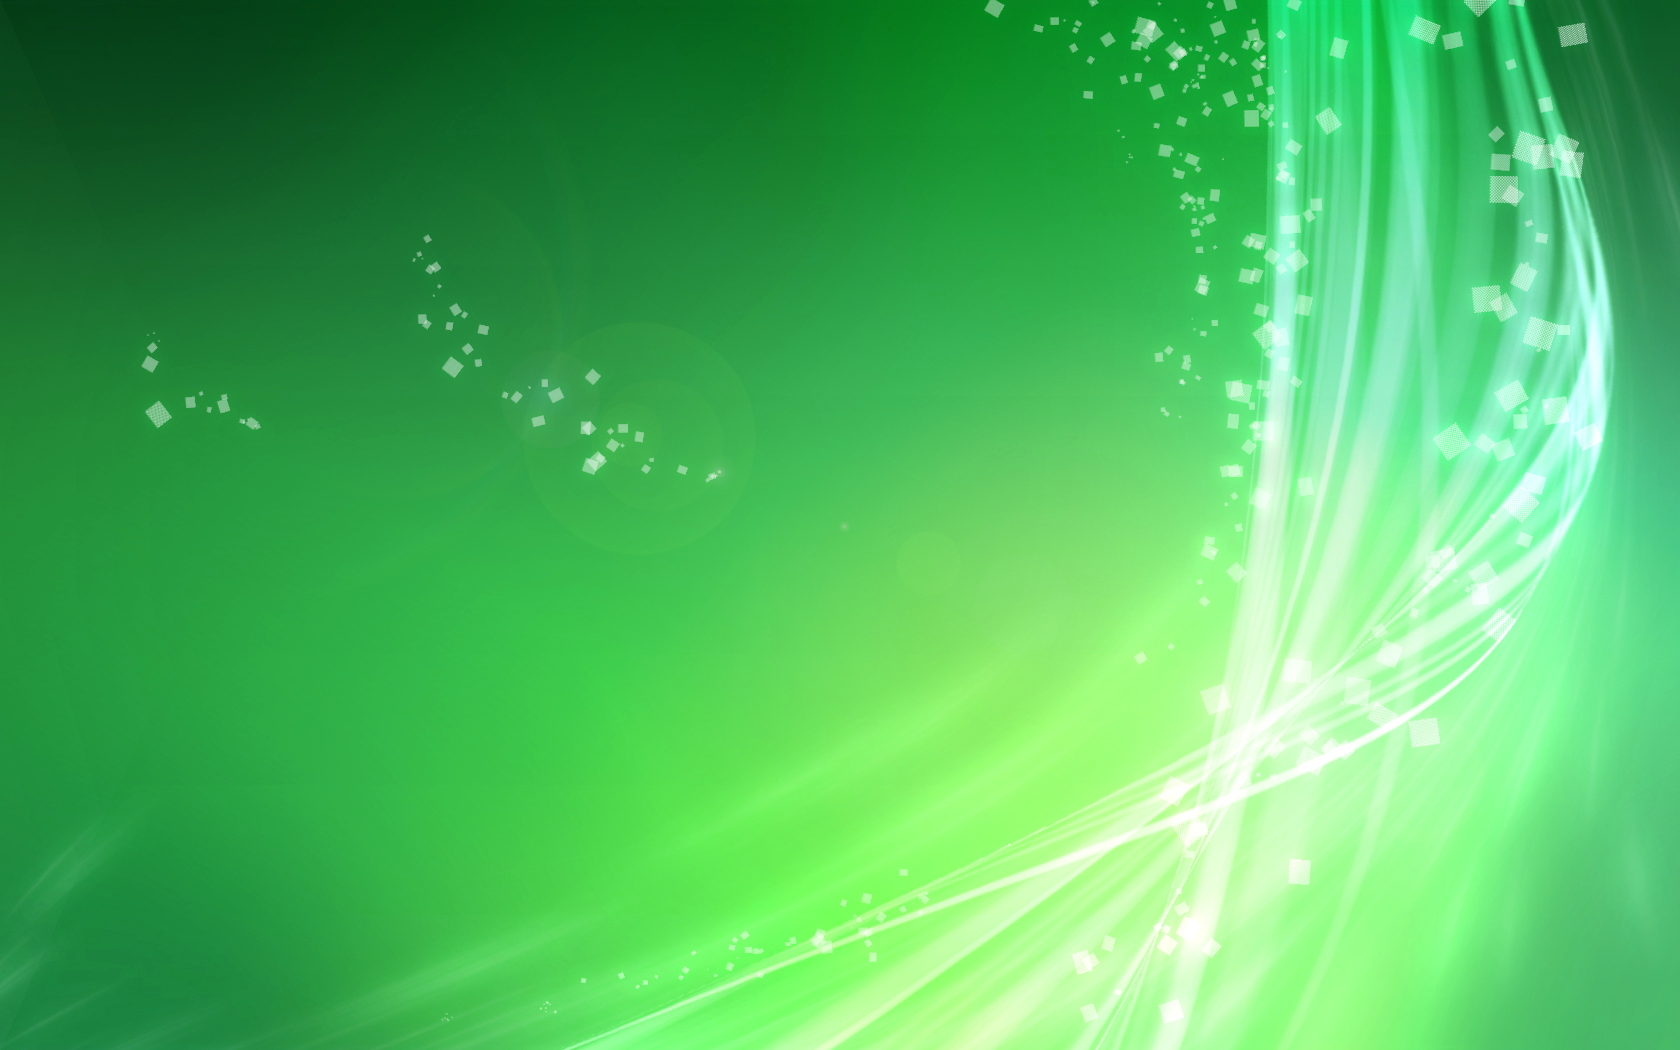 HD Light Green Wallpaper